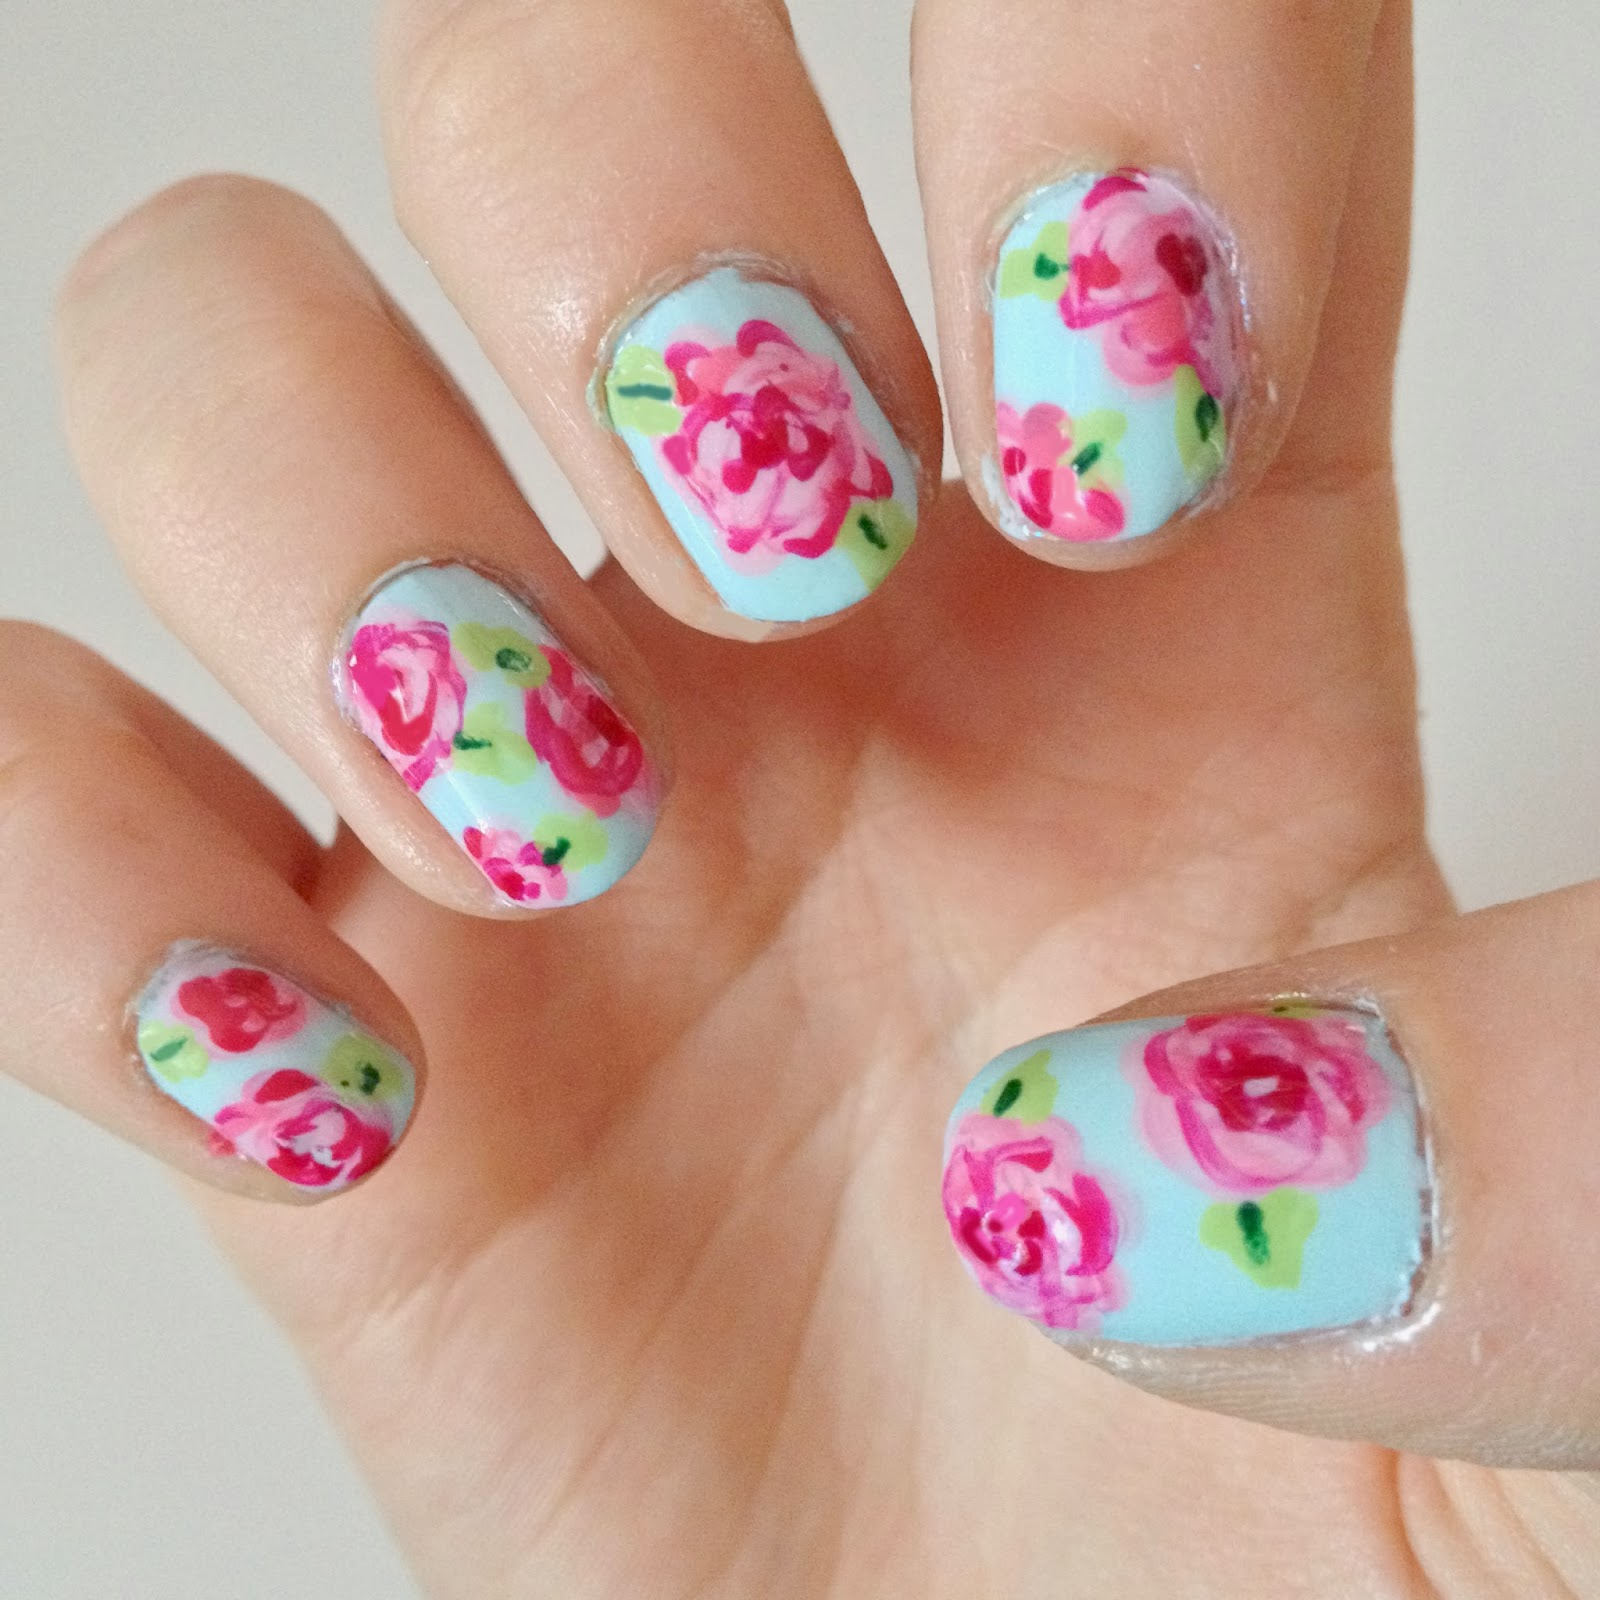 11 Radiant Rose Nail Art Designs